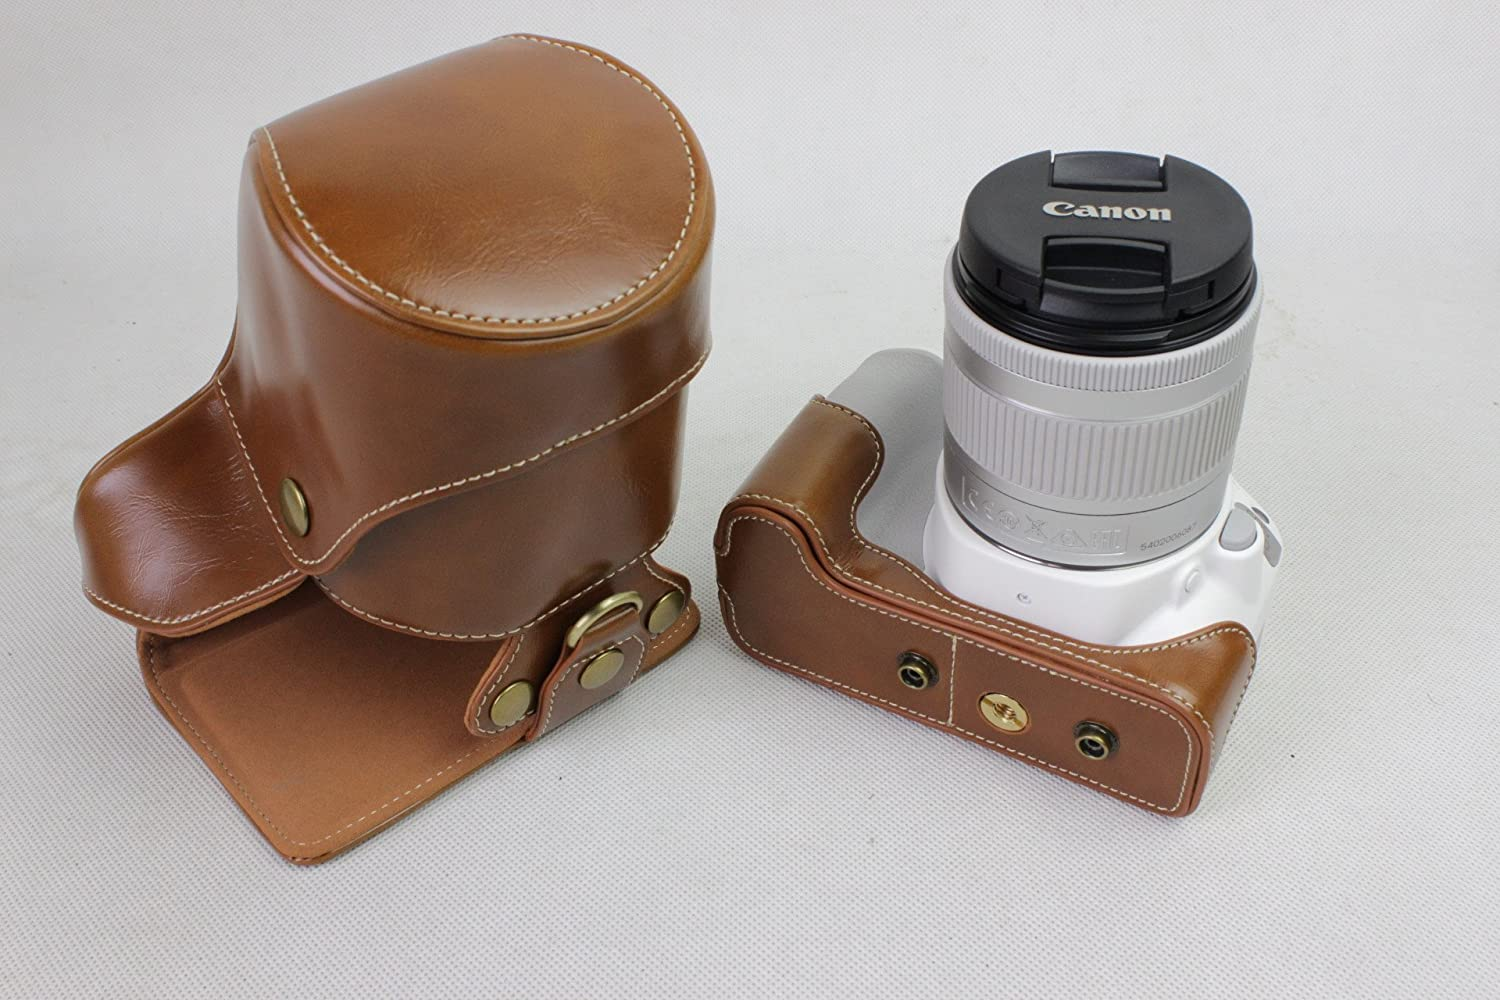 BolinUS Handmade PU Leather FullBody Camera Case Bag Cover for Canon EOS 200D with 18-55mm lens Bottom Opening Version Coffee Neck Strap Mini Storage Bag EOS 200D Case